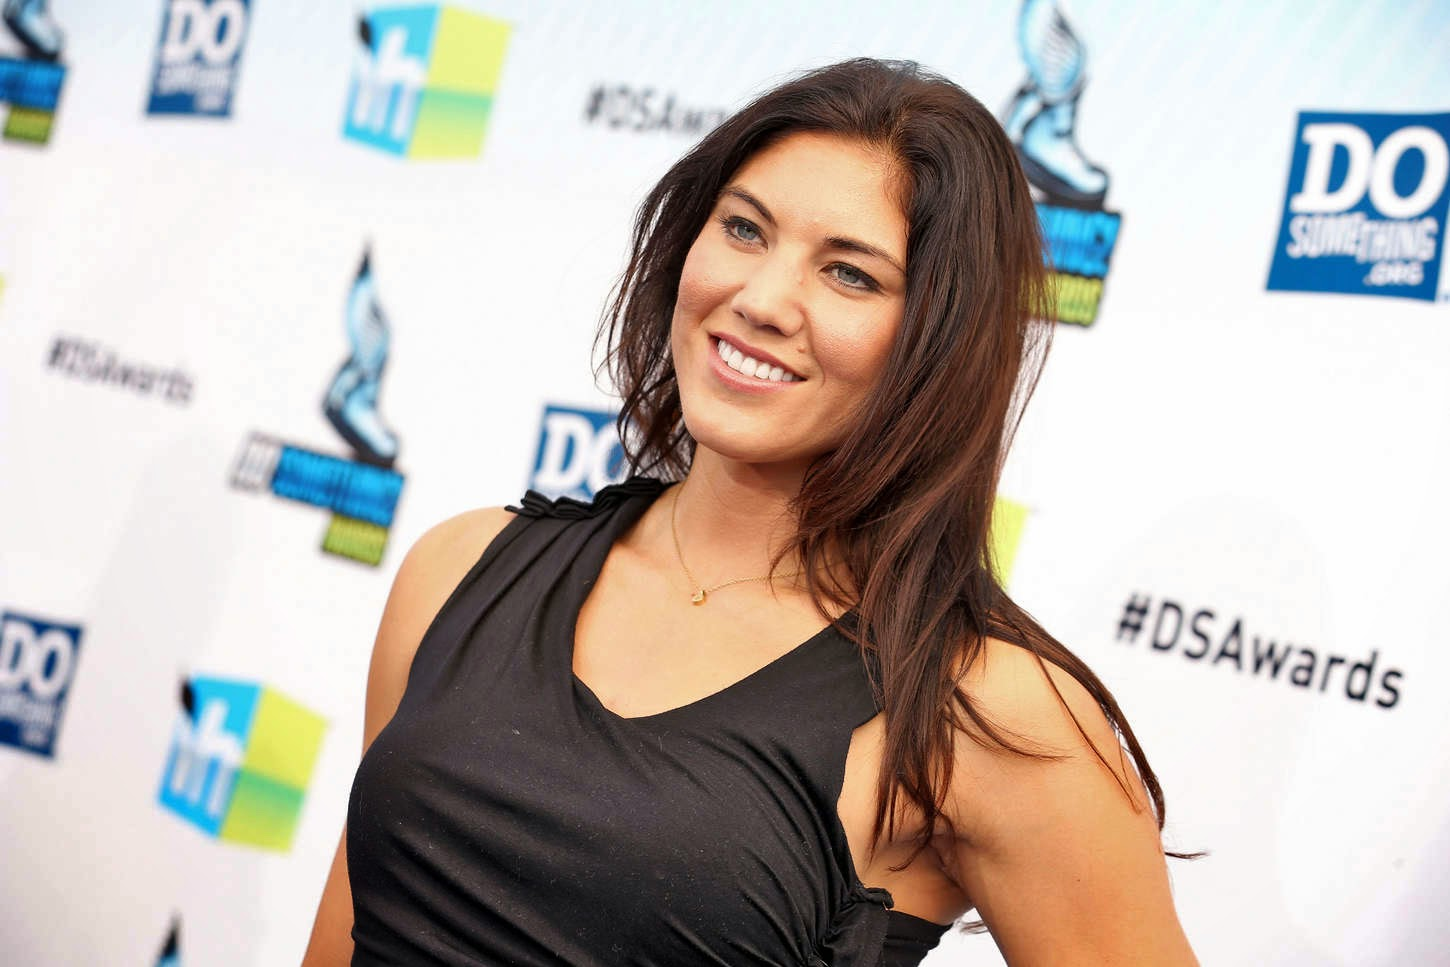 Cleavage Hope Solo nudes (24 photos), Sexy, Cleavage, Instagram, butt 2018